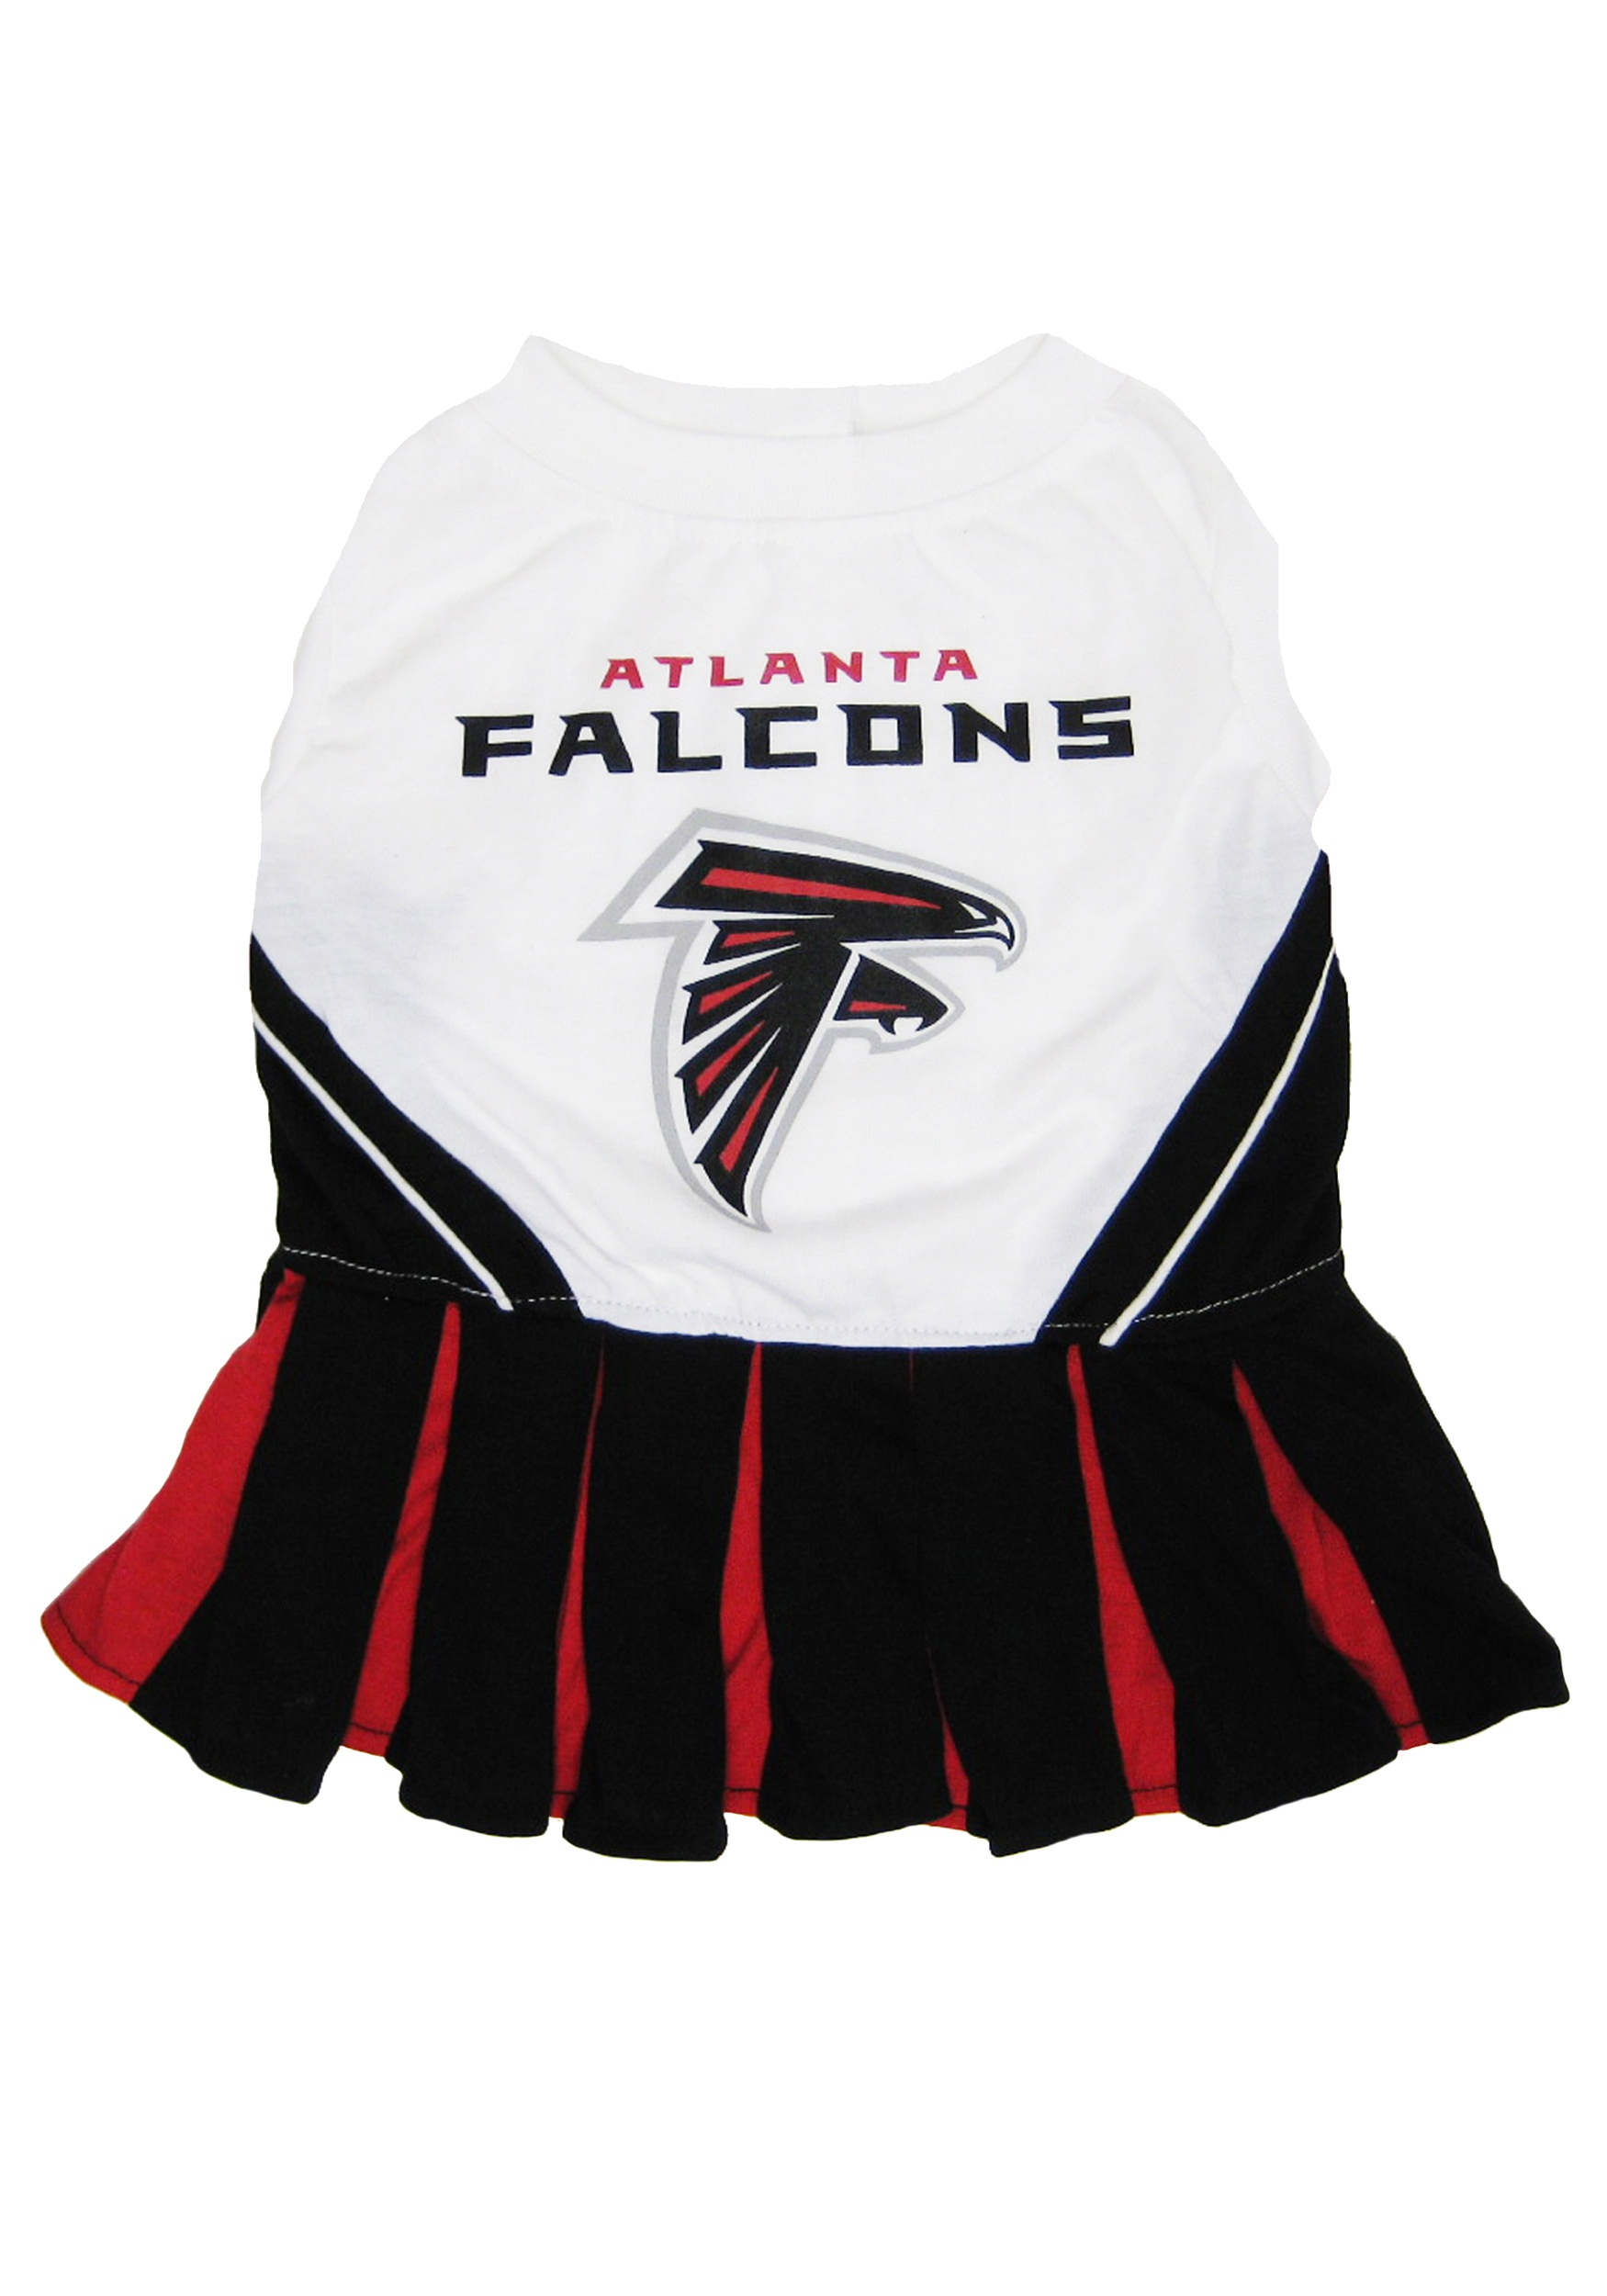 Atlanta Falcons Dog Cheerleader Outfit Halloween Costumes